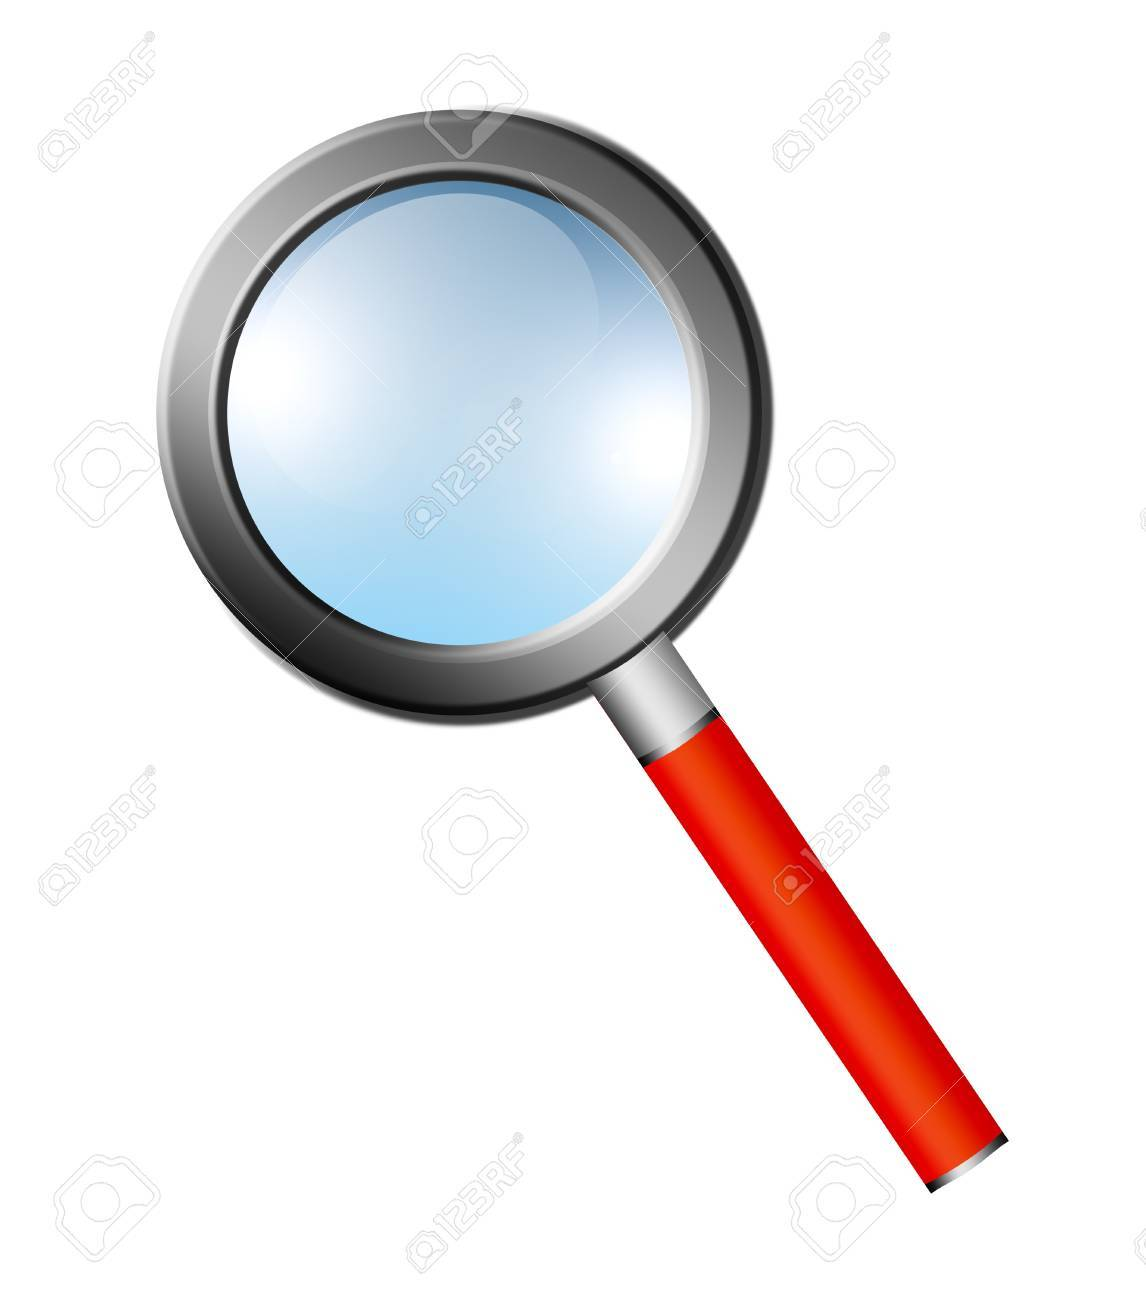 lupe over white backgound. science and  investigation ilustration Stock Photo - 9667068